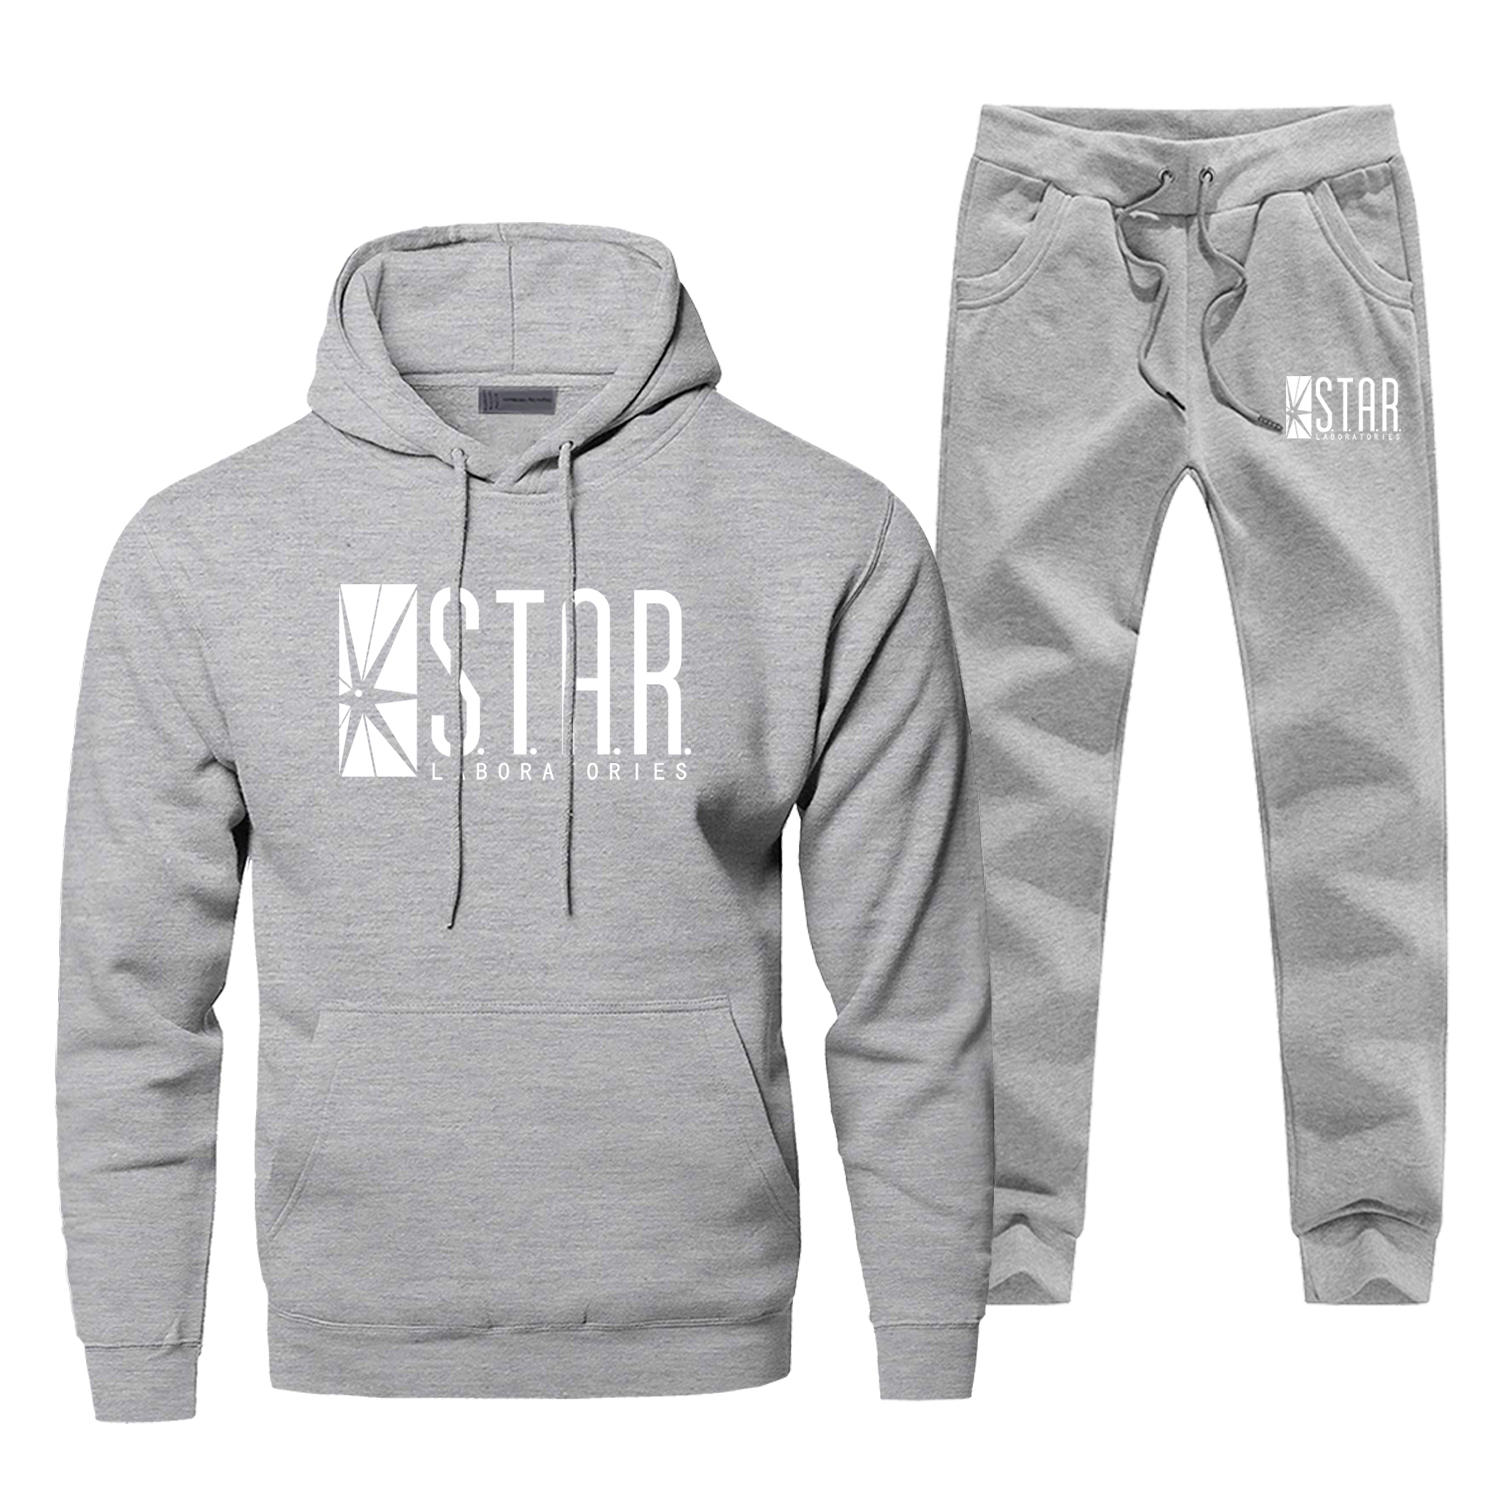 STAR S.T.A.R. Labs Print Fashion Men's Sportswear The Flash Super Hero Sweatpants Casual Fleece Sportsman Wear Hoodie Swearshirt